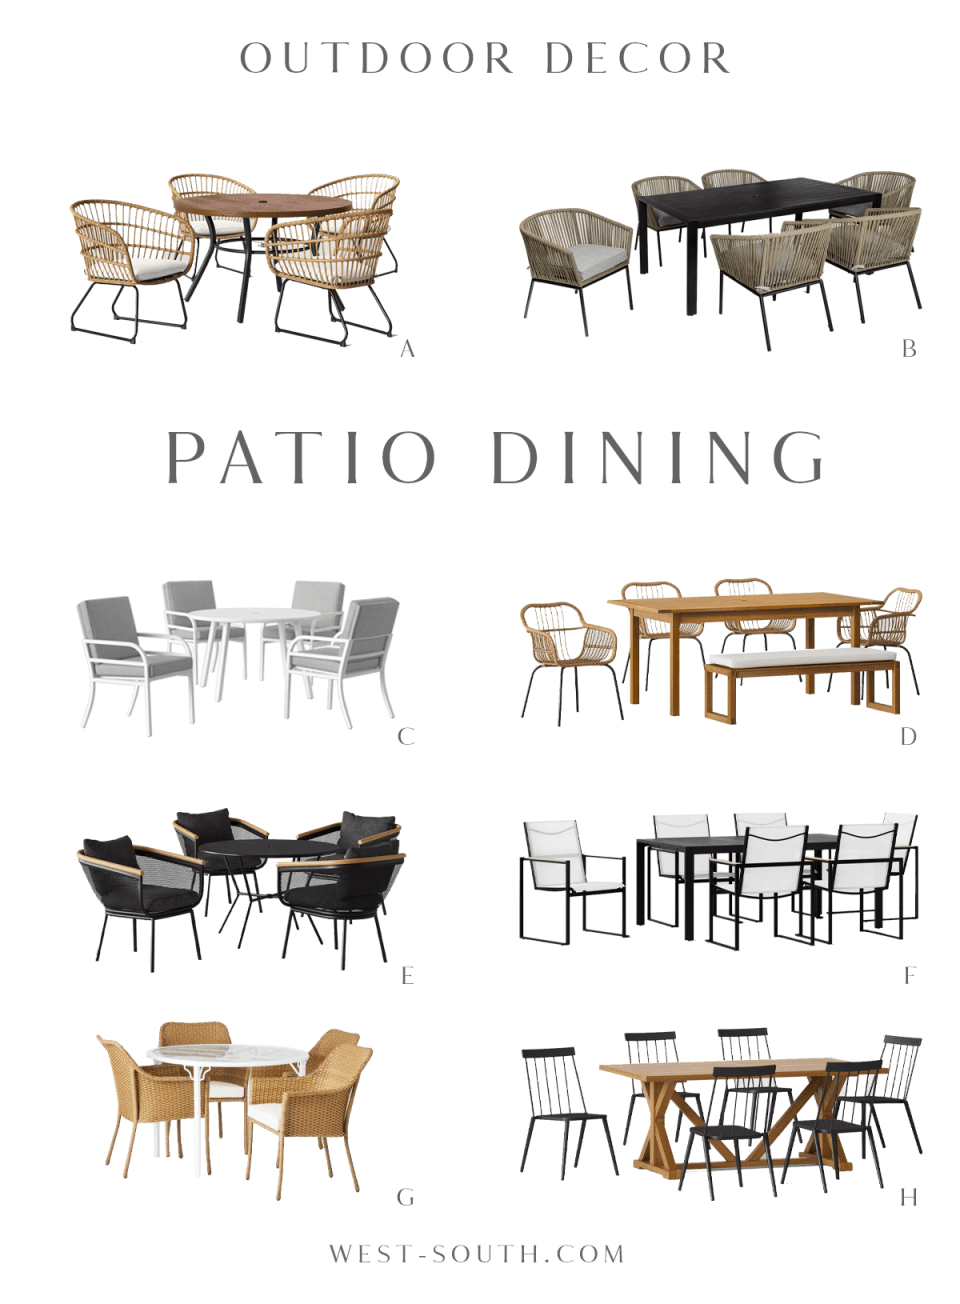 round up of patio dining furniture by West-South